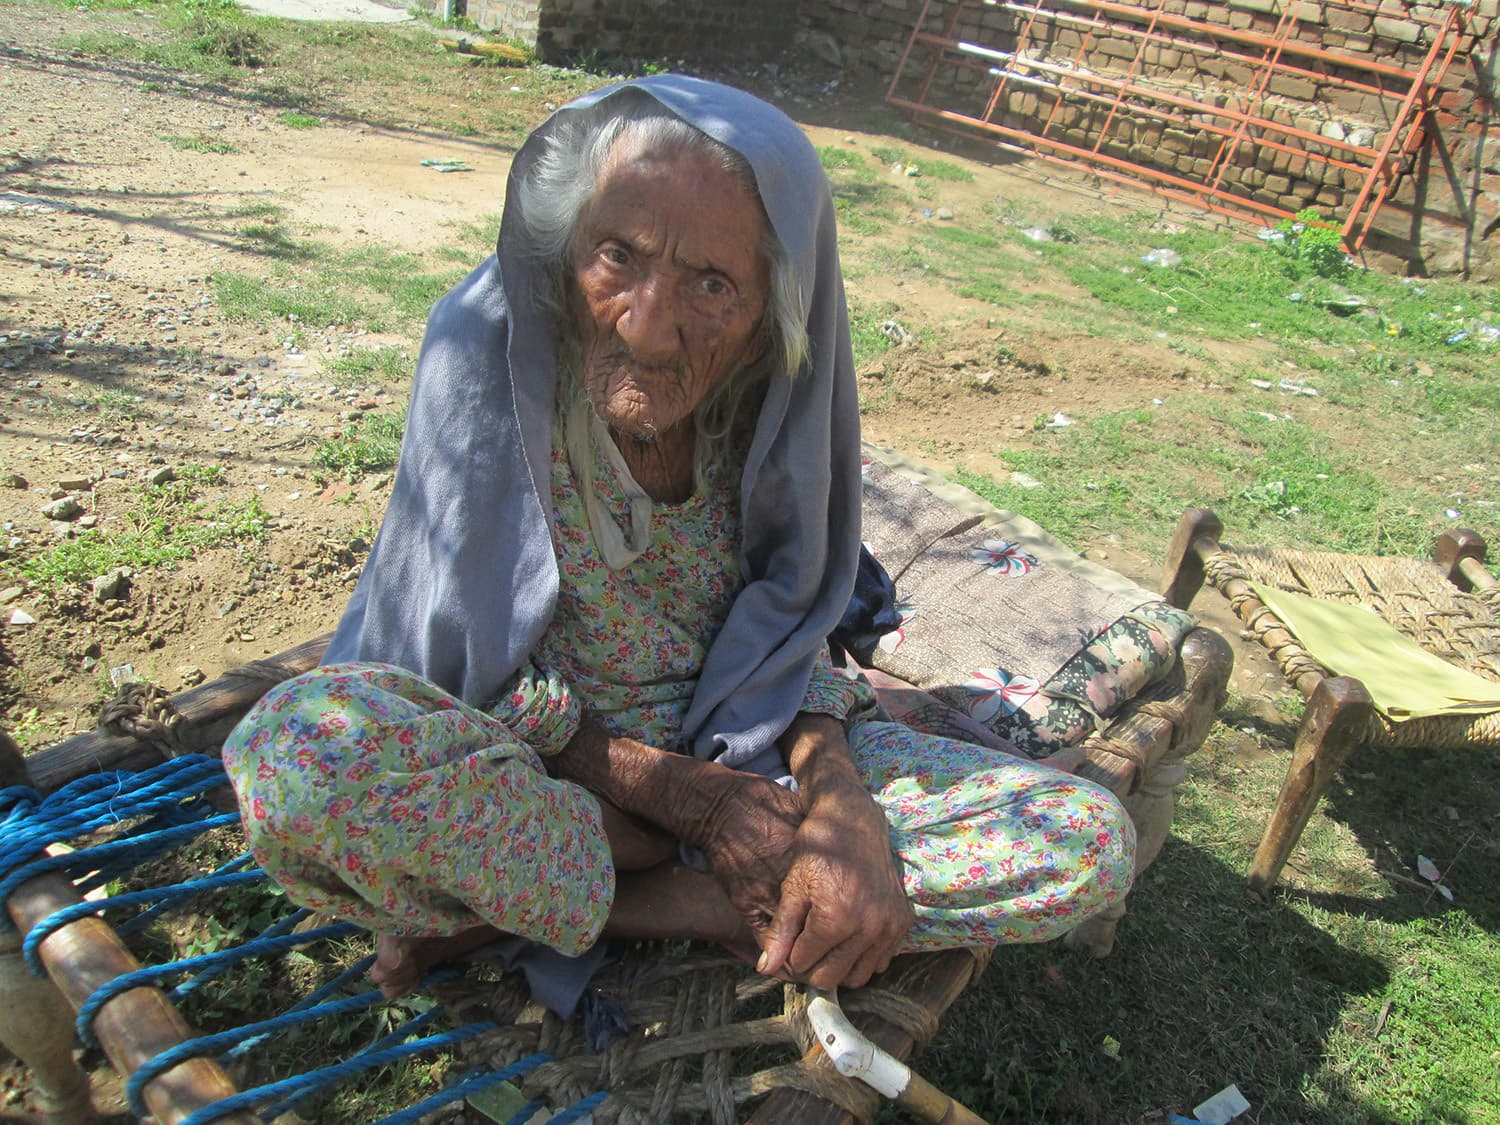 Resham Bee, a 107 year old resident of Vahali village witnessed the burning of Hindus and Sikhs alive by the rioters.